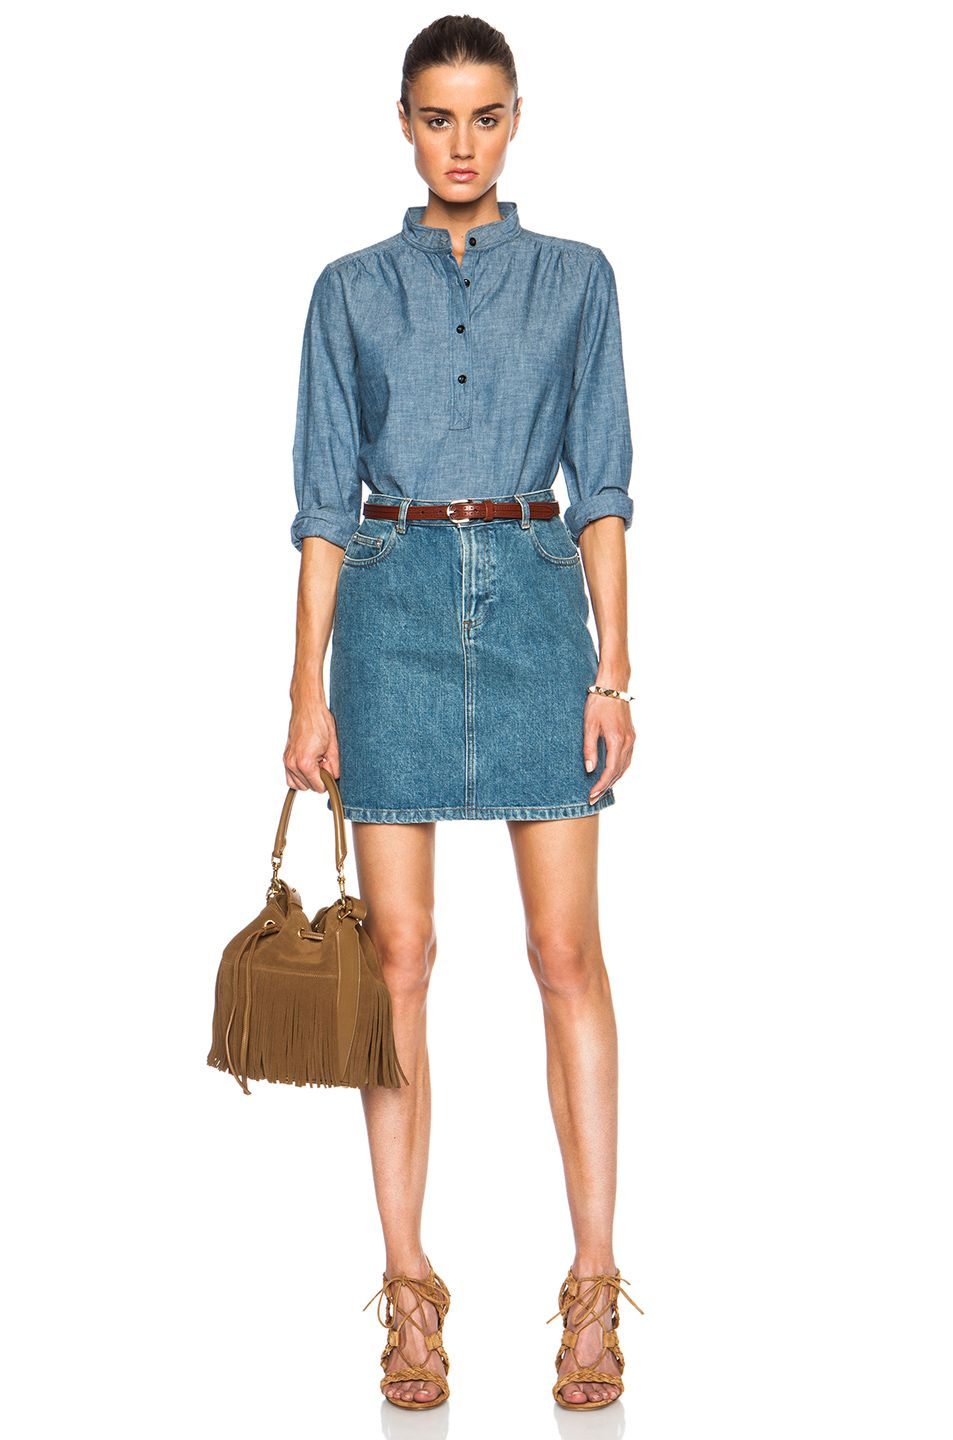 49aa1df9f2 Image 5 of A.P.C. Standard Denim Skirt in Indigo Delave | yes ...